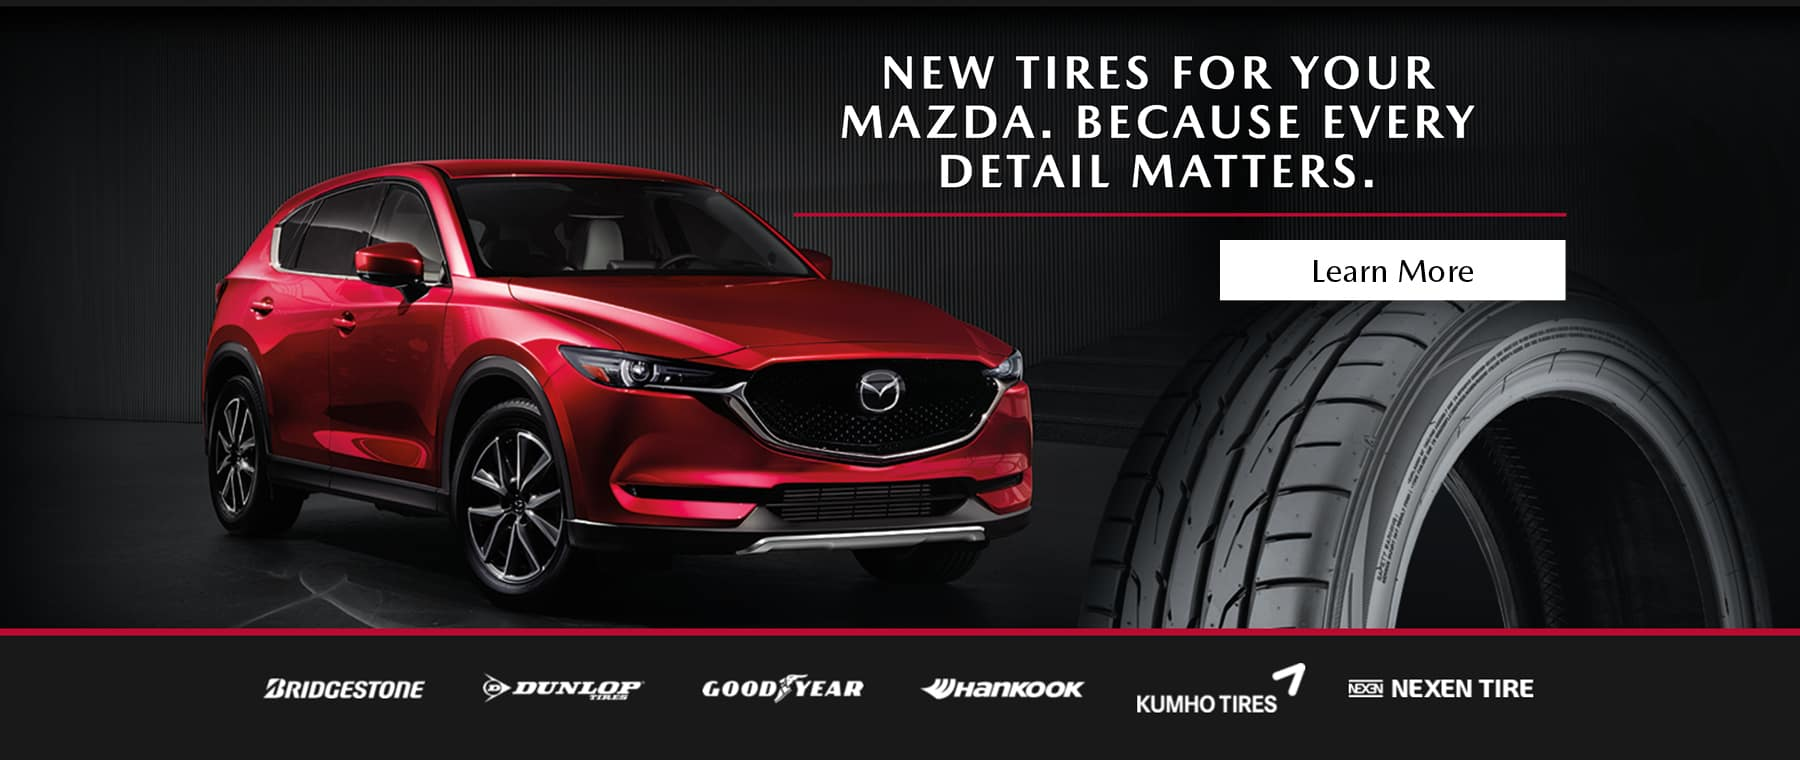 New tires for your Mazda. Because Every Detail Matters. Learn more.